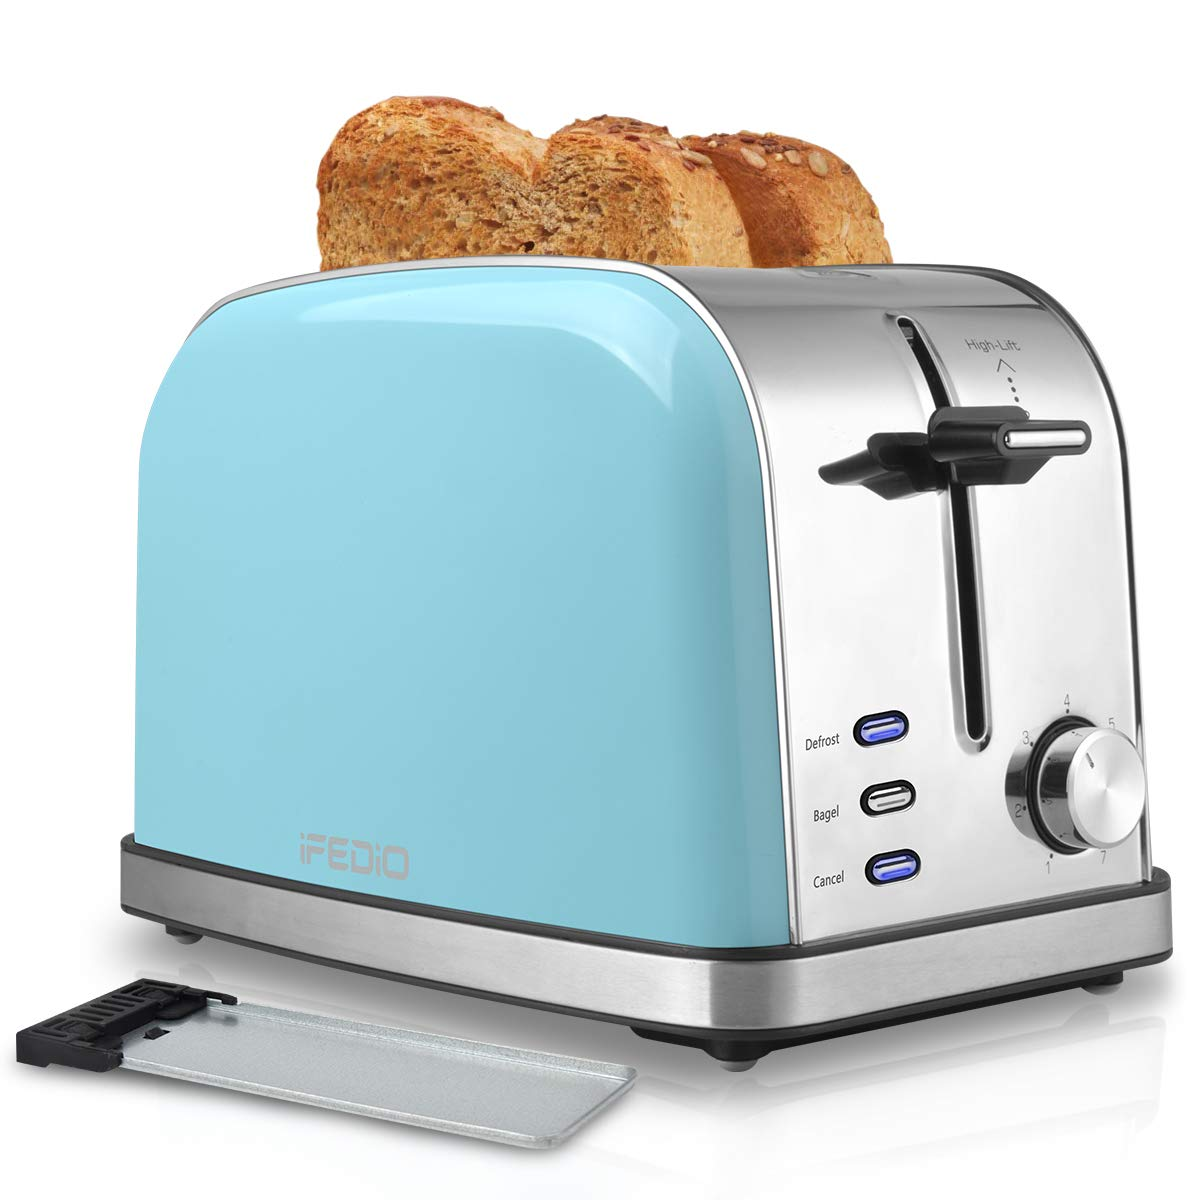 Toaster 2 Slice Toasters Best Rated Prime Extra Wide Slot Toaster with 7 Bread Shade Settings Bagel, Cancel, Defrost Function Removable Crumb Tray Stainless Steel Toaster Blue by iFedio